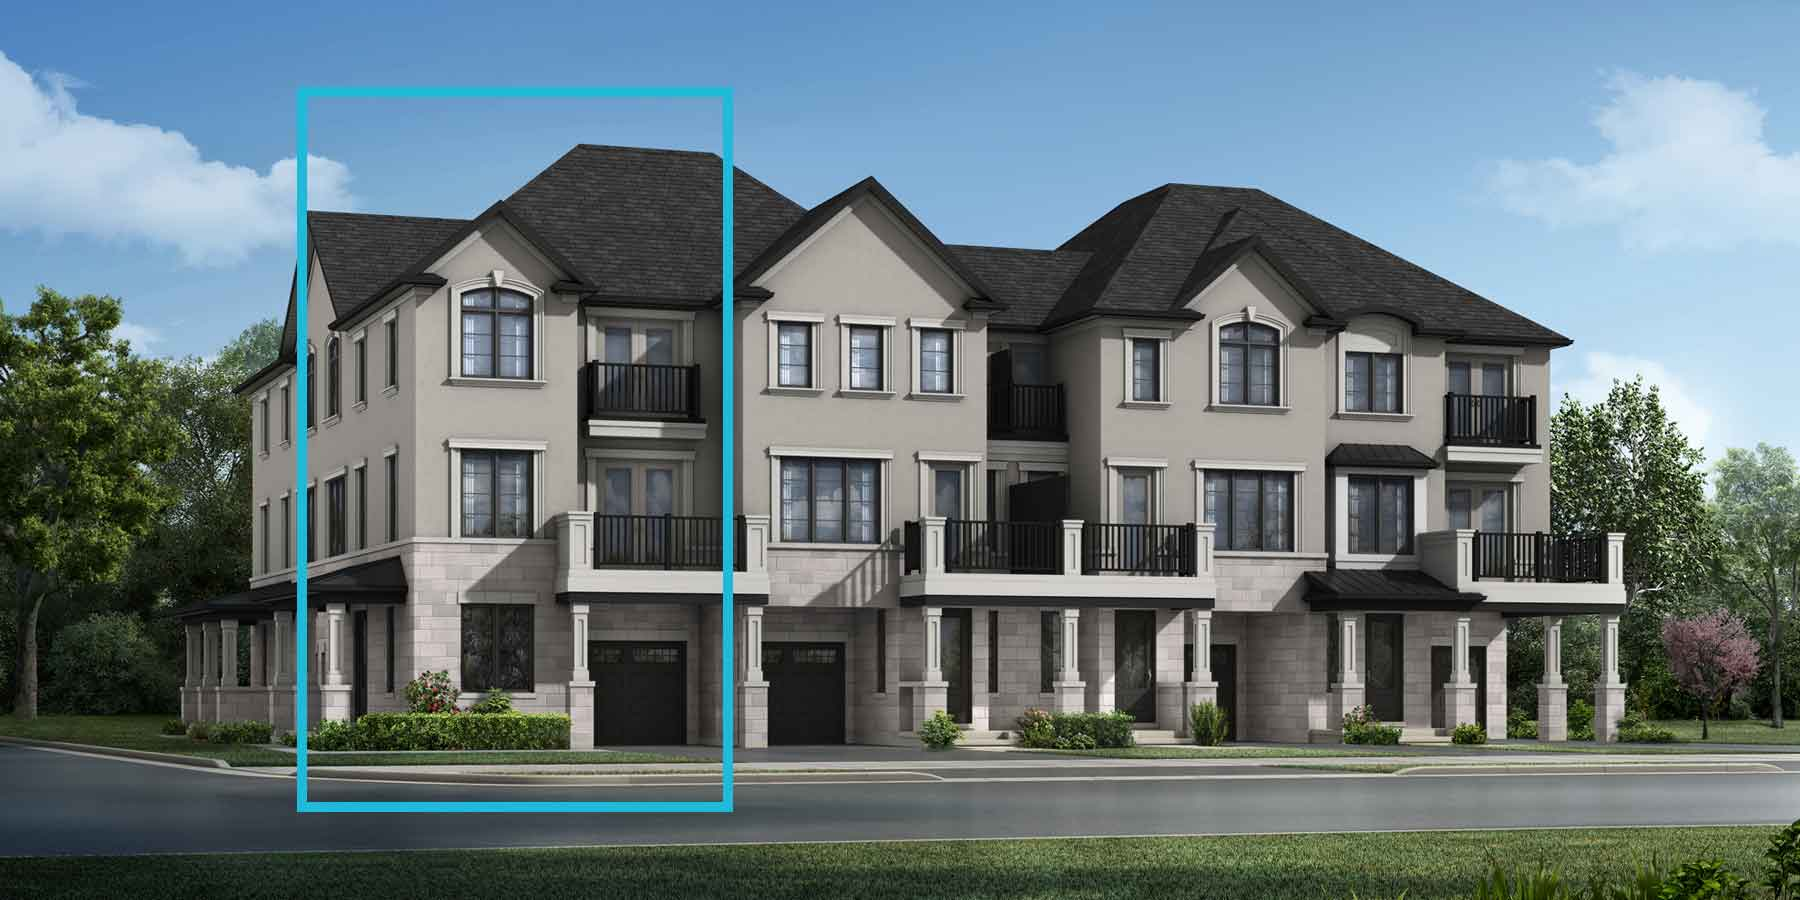 Brondesbury Corner Plan TownHomes at The Nine in Mississauga Ontario by Mattamy Homes